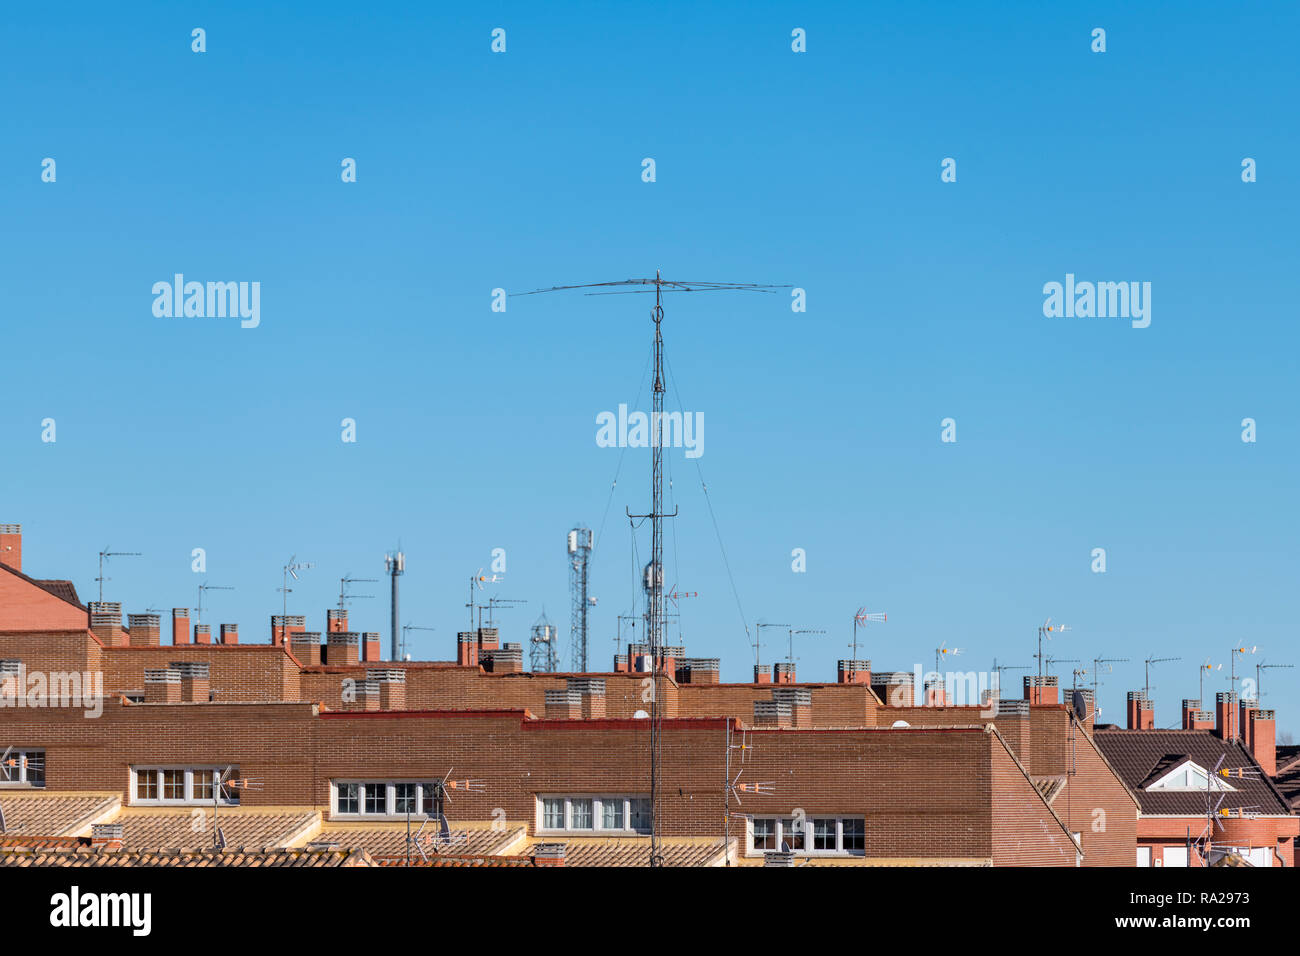 Ham Radio Antenna Stock Photos & Ham Radio Antenna Stock